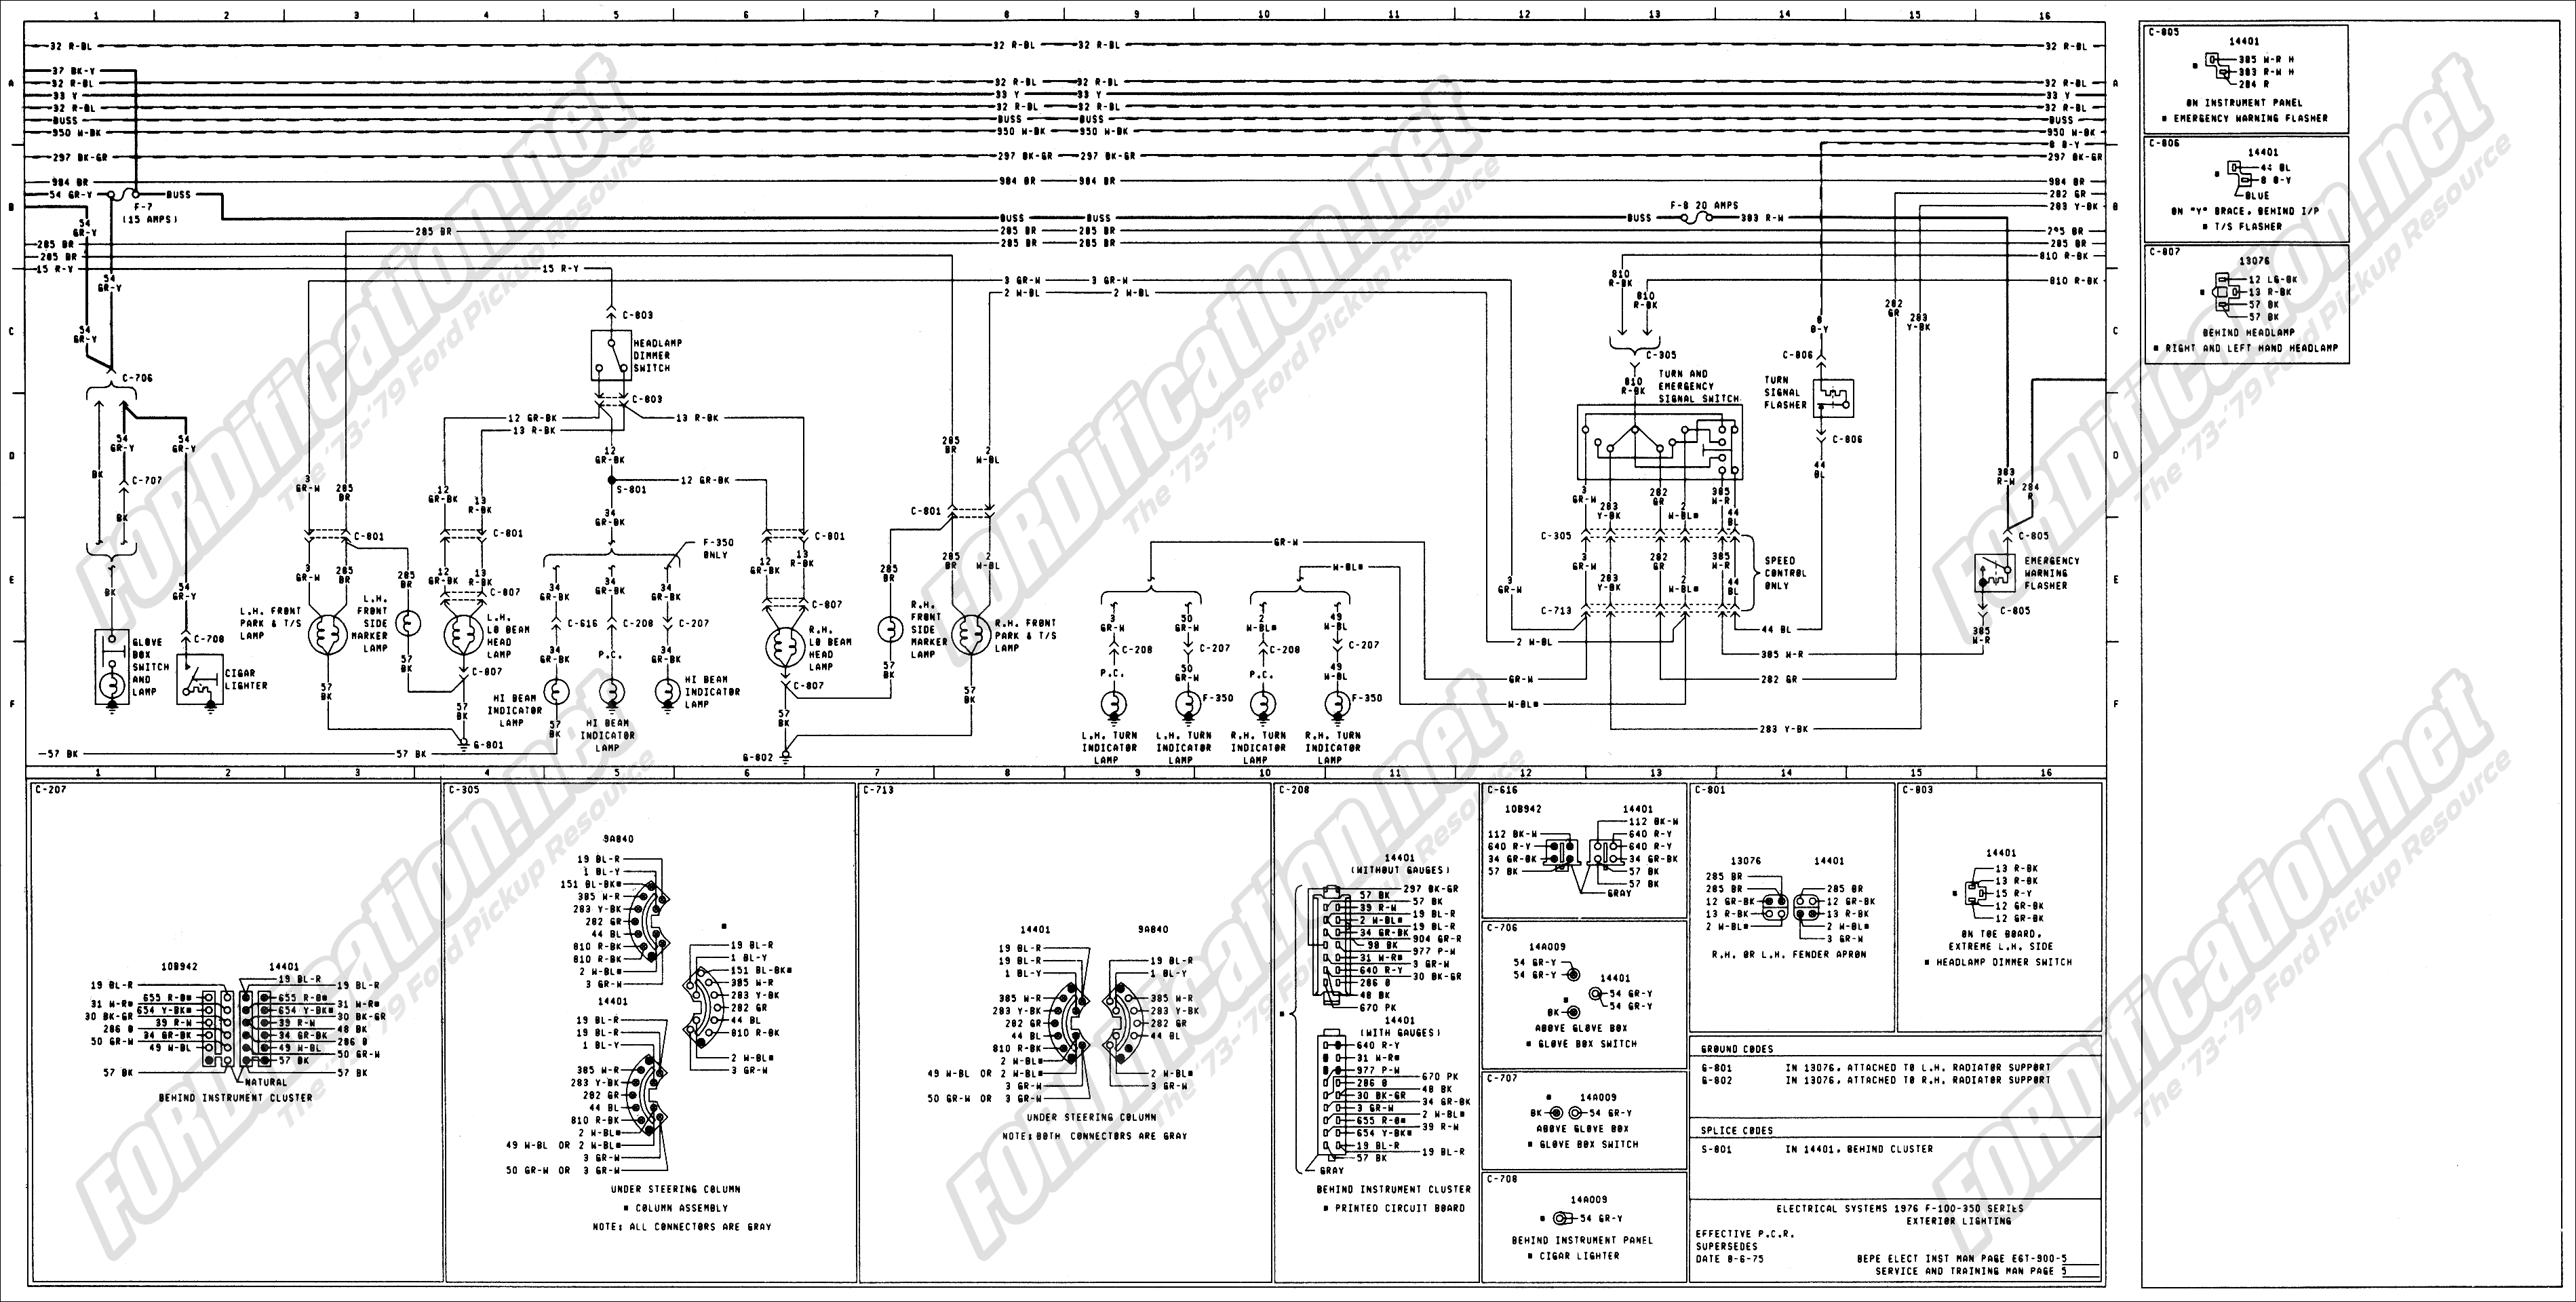 wiring_76master_5of9 1983 ford f100 wiring diagram wiring diagram simonand 1979 ford f100 fuse box diagram at mr168.co